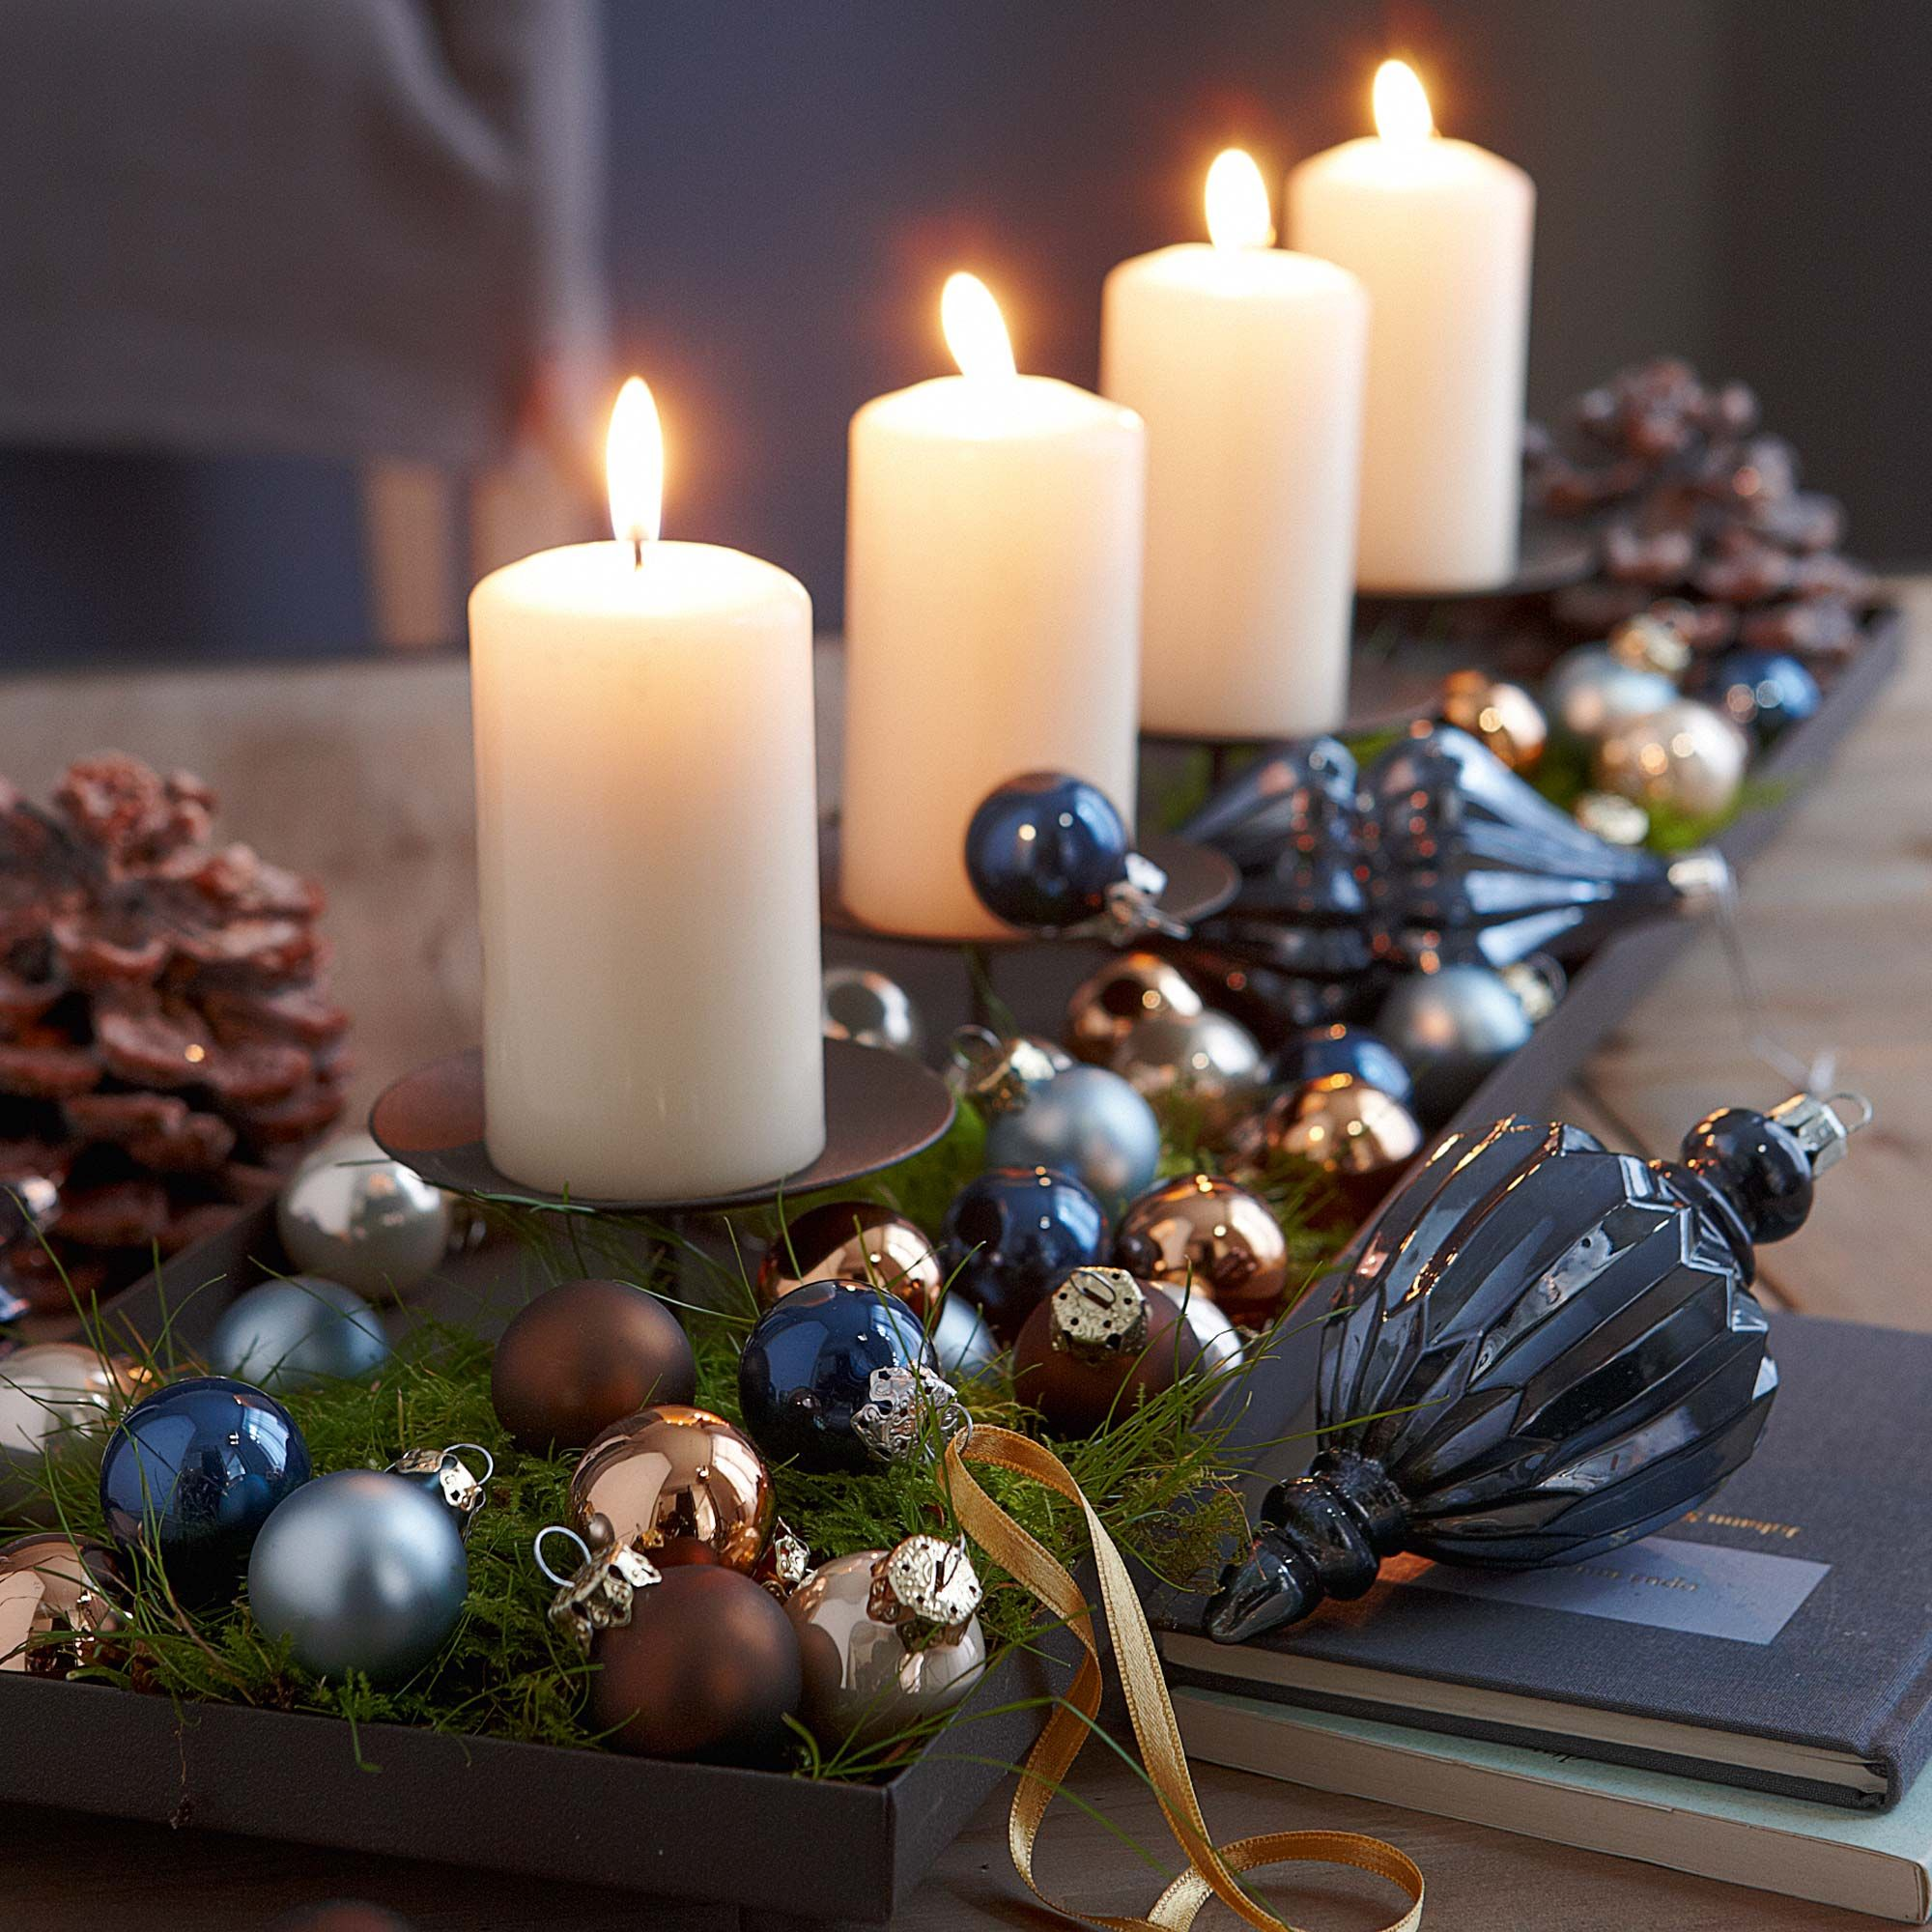 Bathroom Decorating Ideas With Candles christmas decorating ideas | christmas decor, trays and holidays